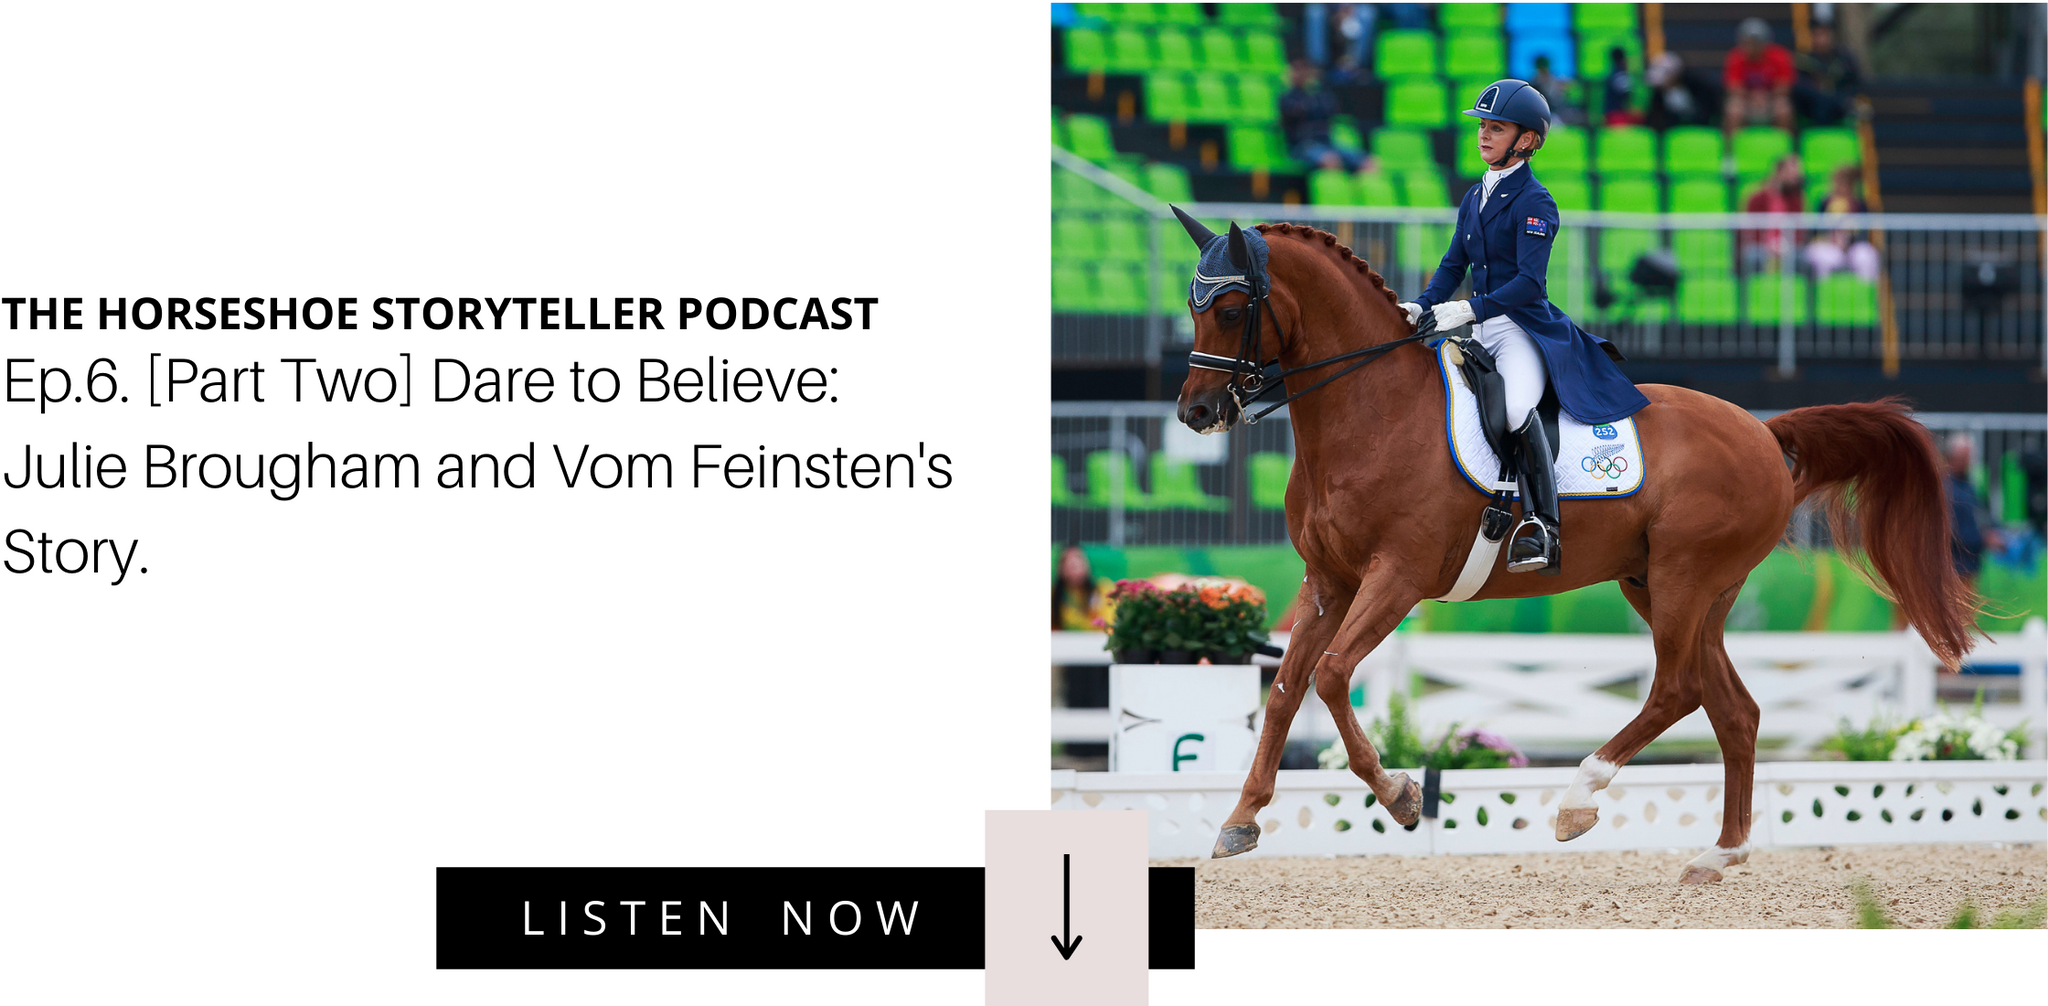 [PART TWO] NZ Dressage Rider Julie Brougham on the World Equestrian Games with Vom Feinsten and Life Today.